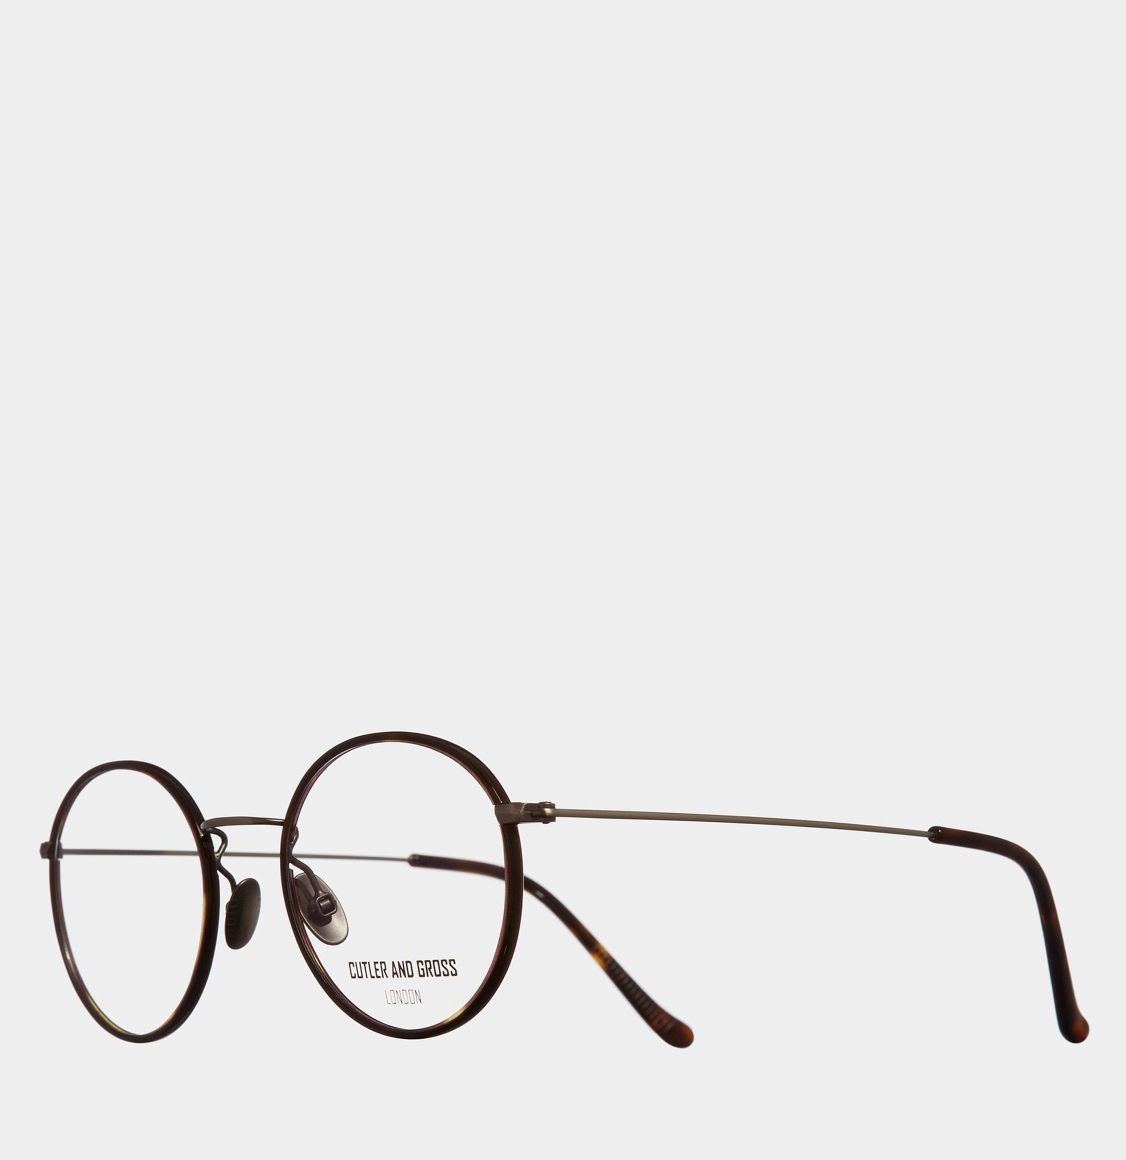 Cutler and Gross Retro Round-Frame Gunmetal Optical Glasses